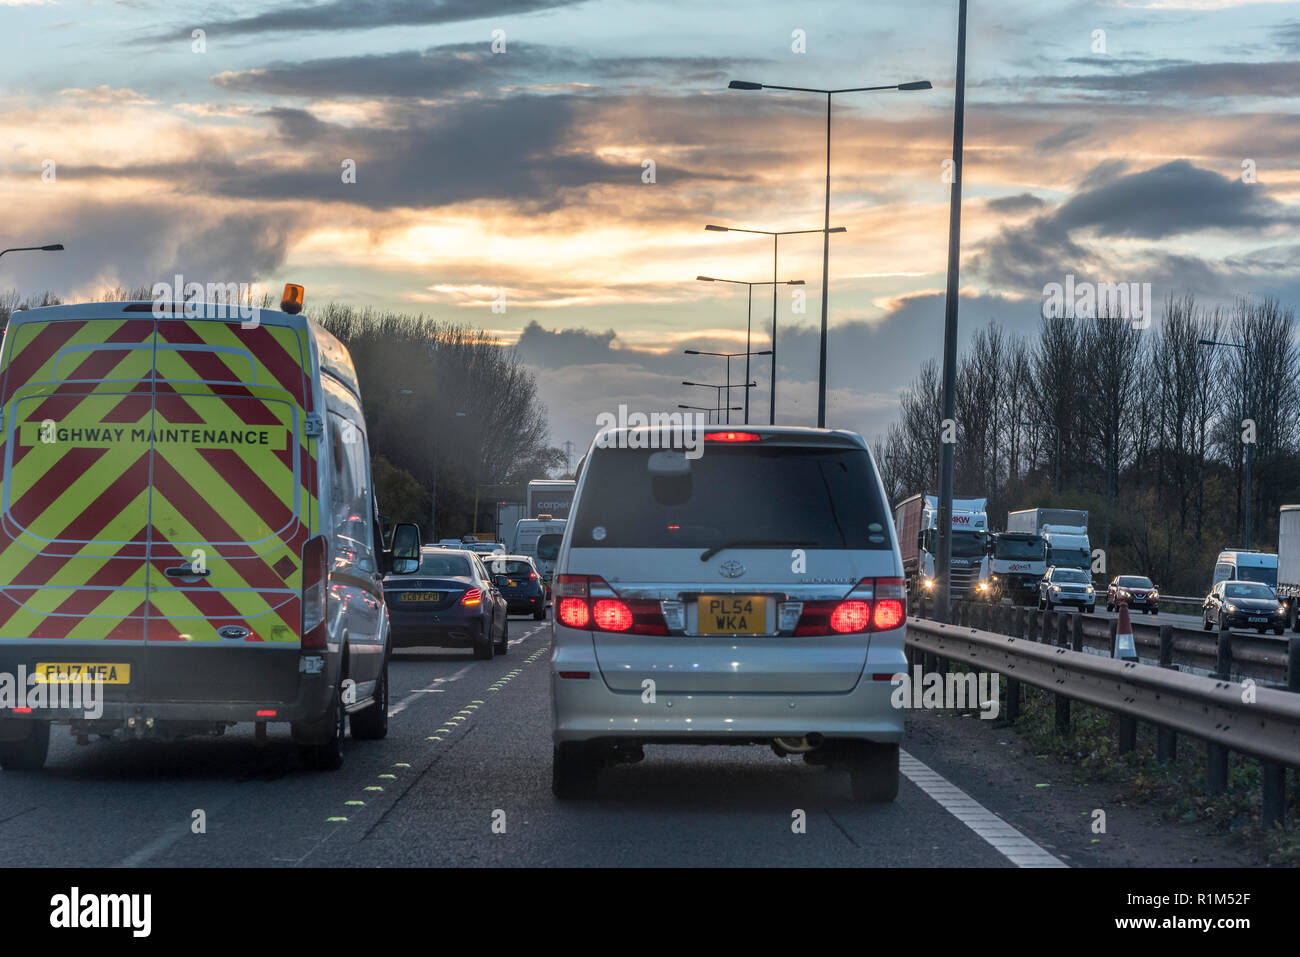 Evening traffic jam. - Stock Image